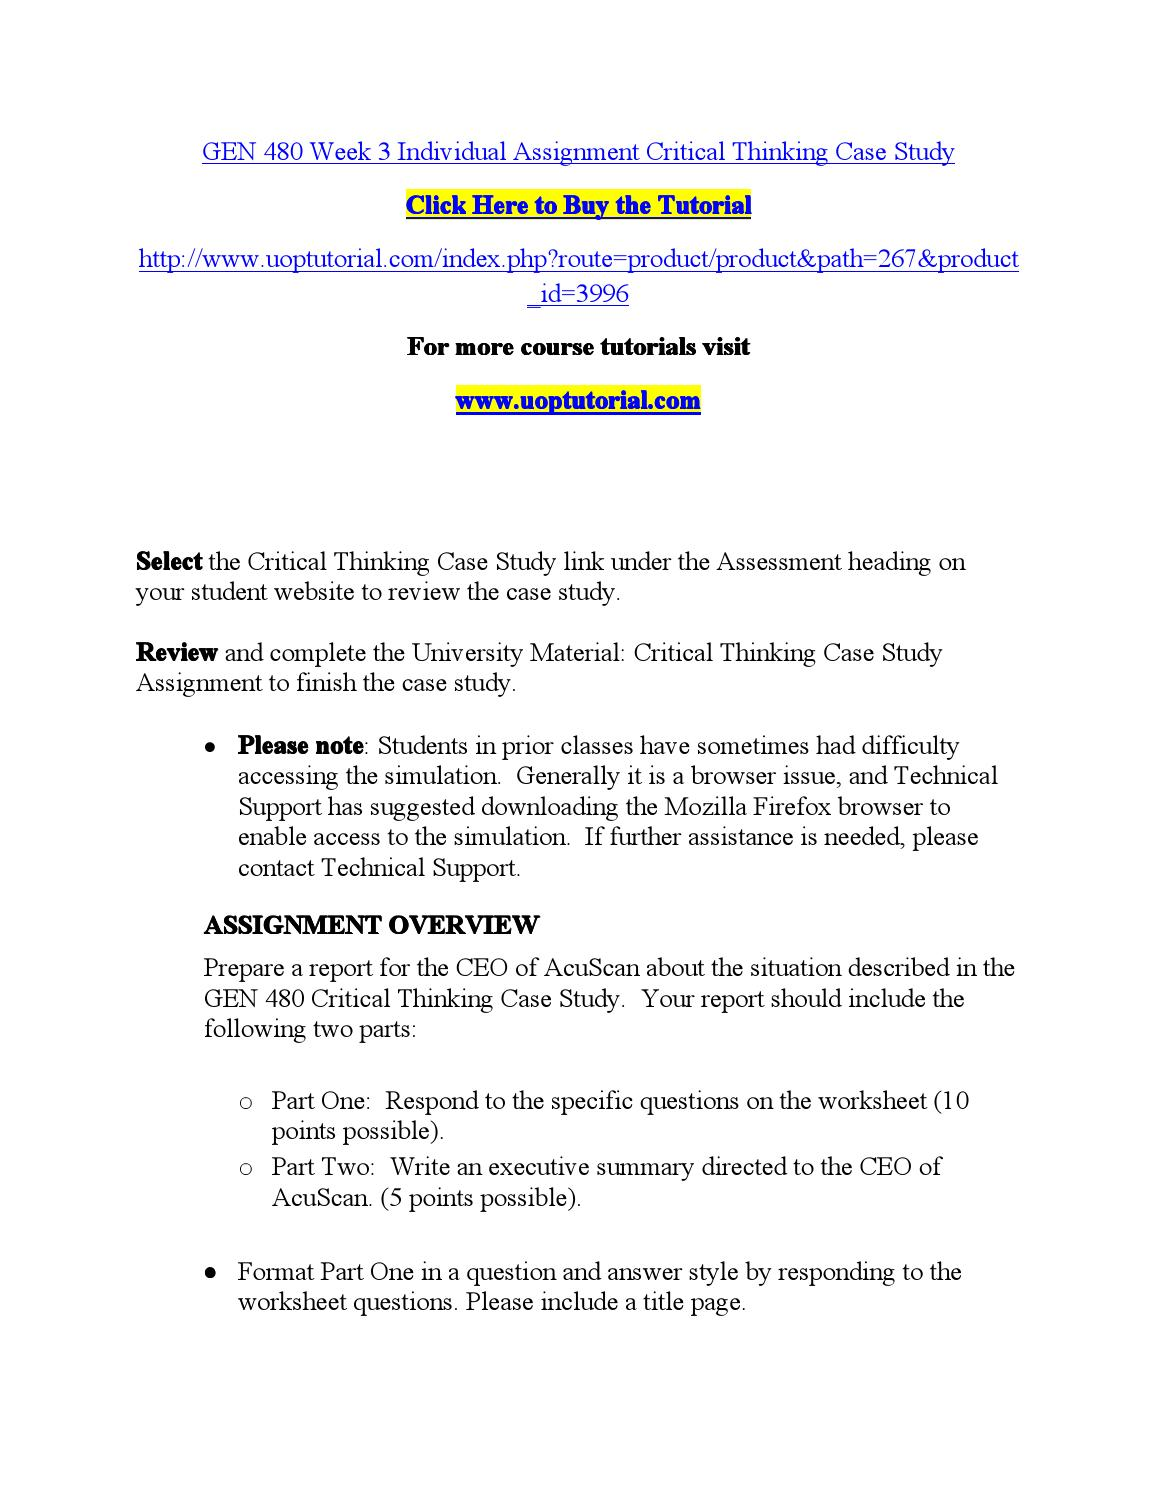 acuscan critical thinking case study